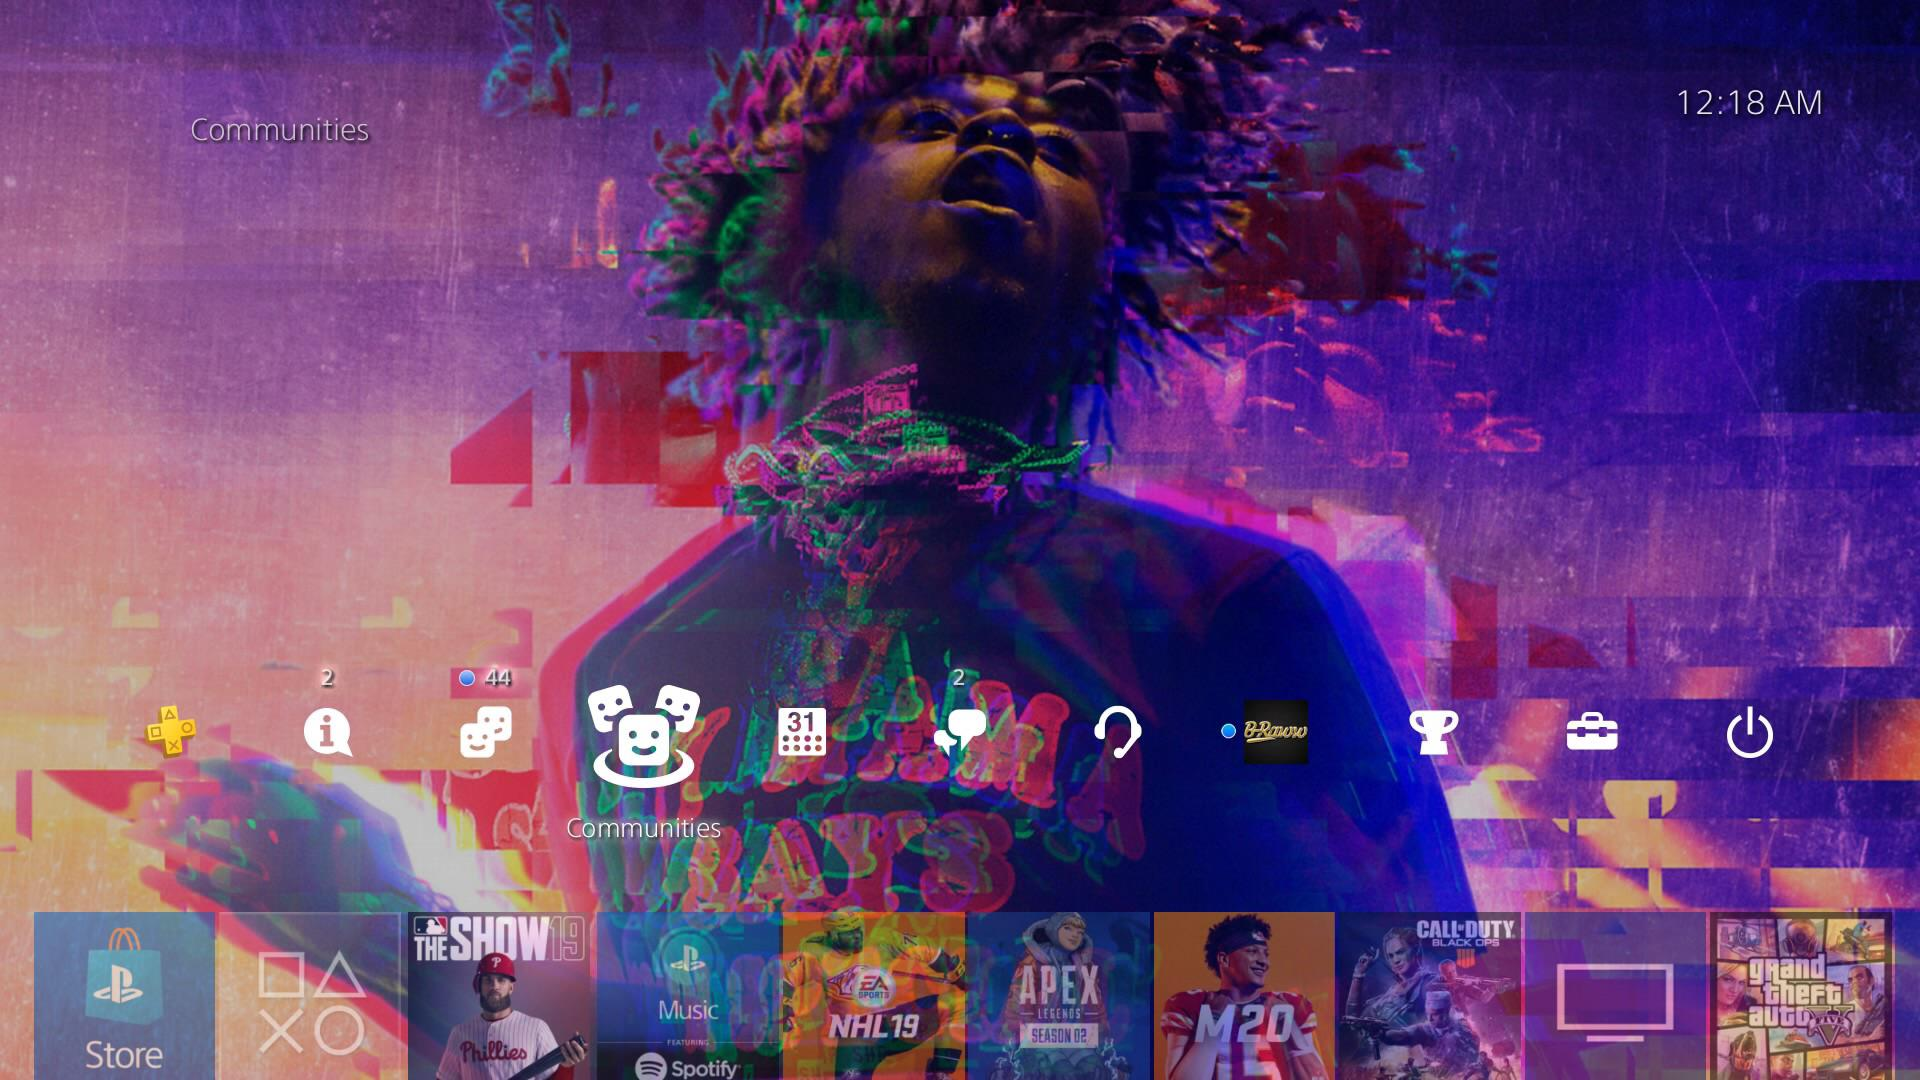 Lil Uzi Vert Laptop Wallpapers Top Free Lil Uzi Vert Laptop Backgrounds Wallpaperaccess Lil uzi vert wallpaper hd this application is made for the fans hip hop. lil uzi vert laptop wallpapers top